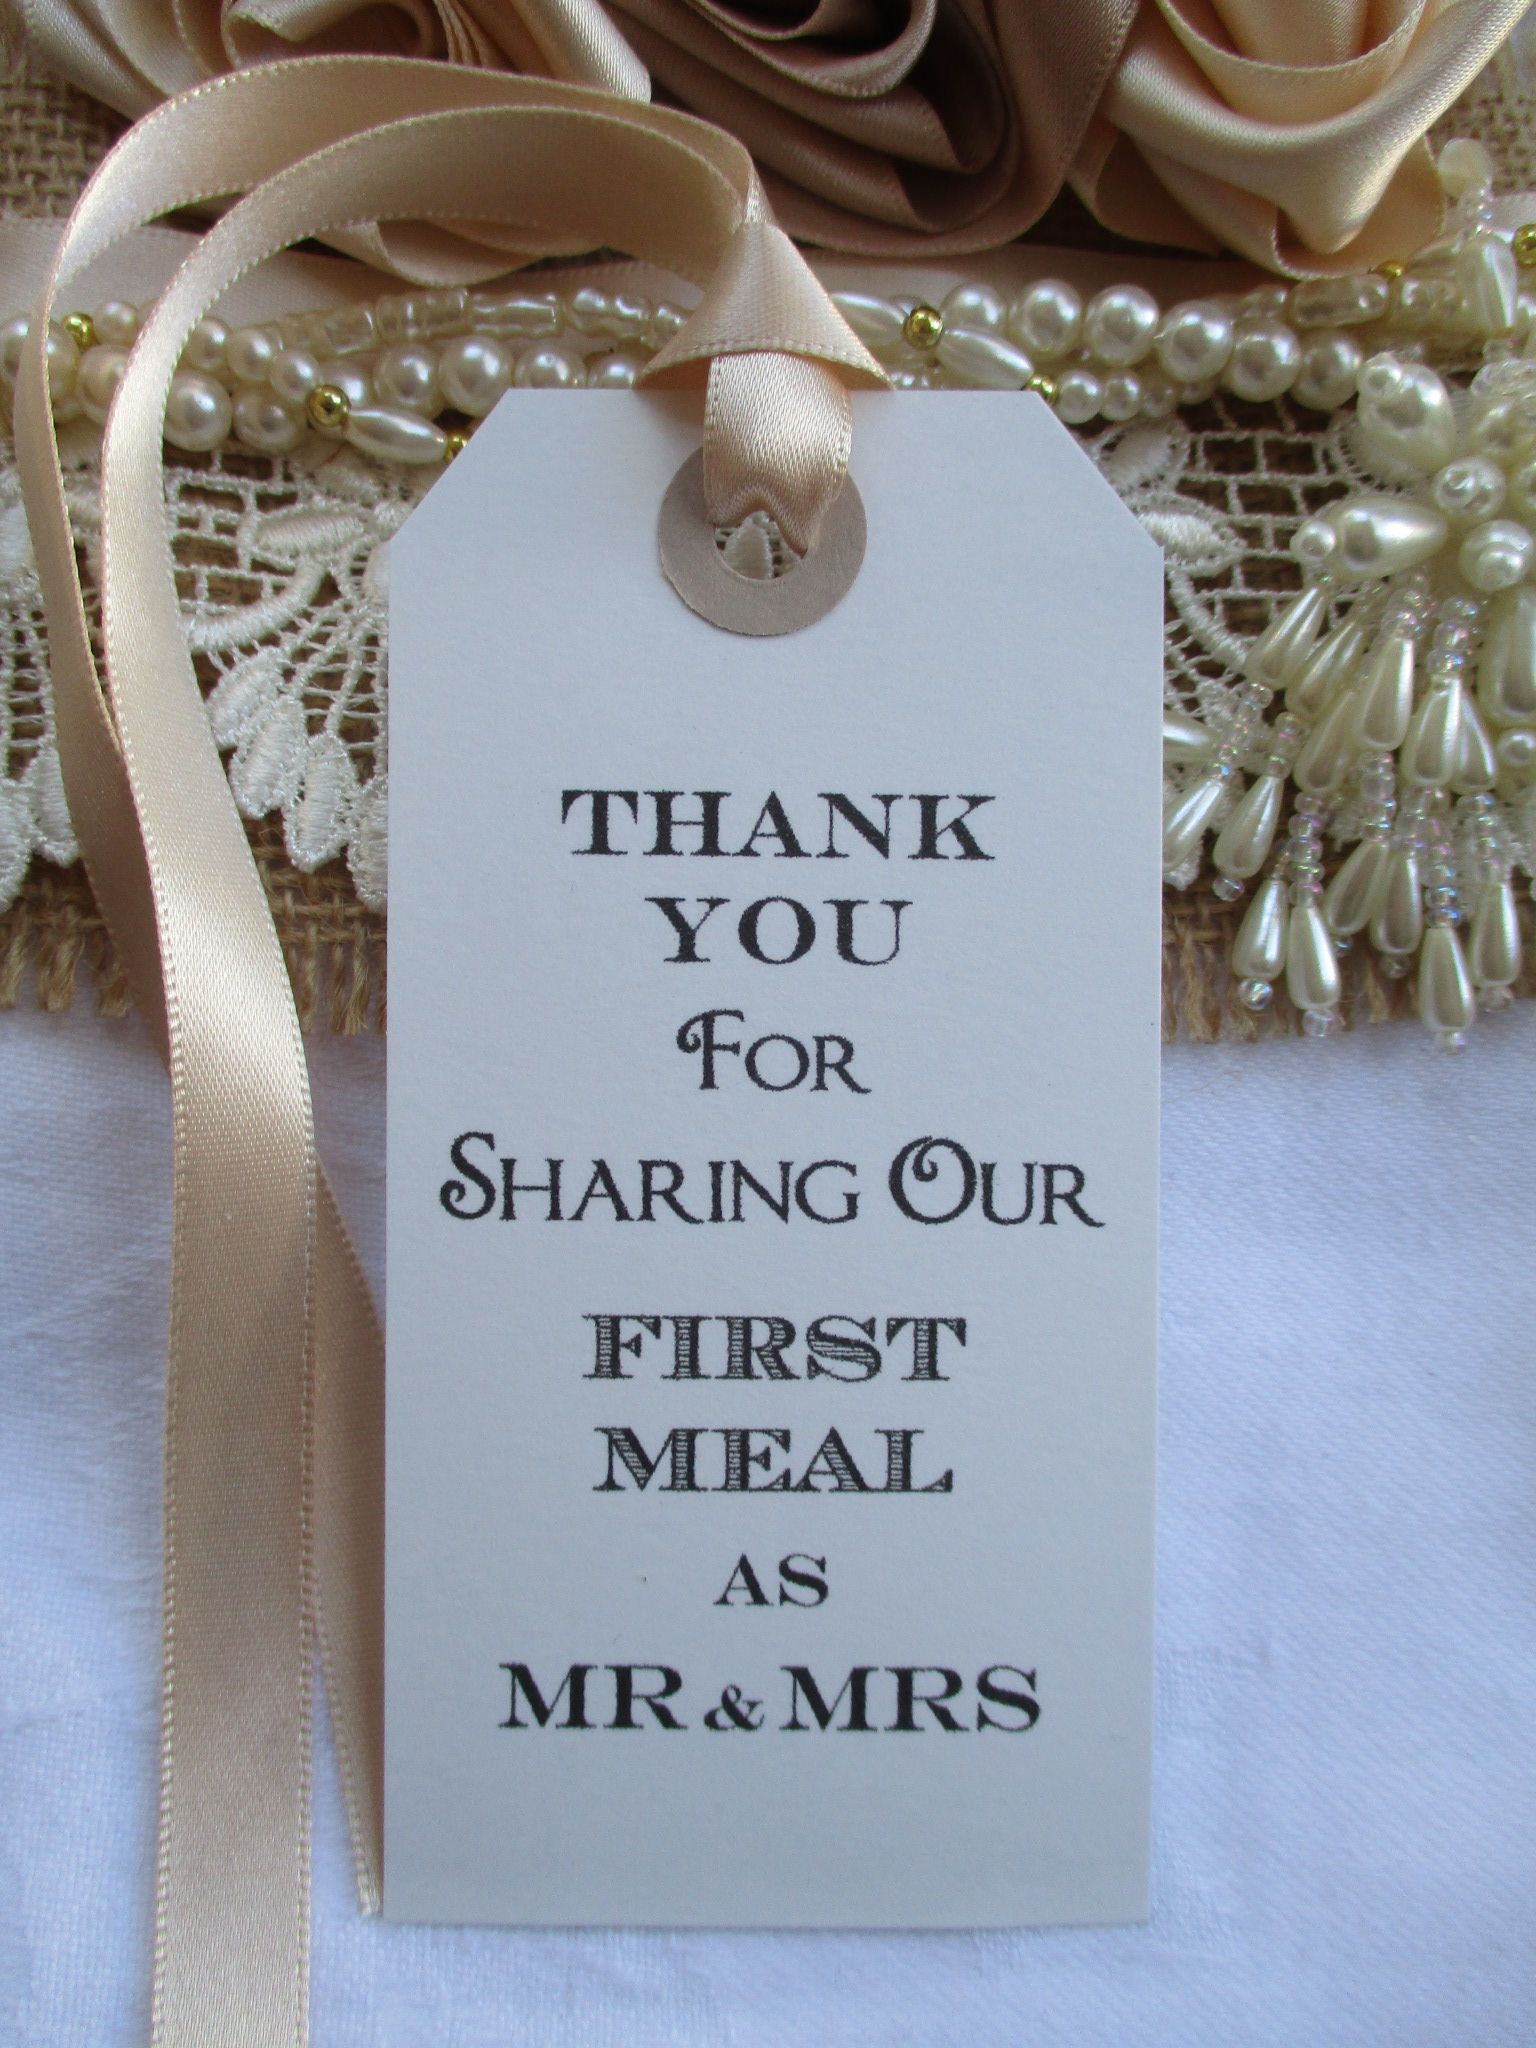 10 Thank You for Sharing Our First Meal as Mr  Mrs Napkin Tie White